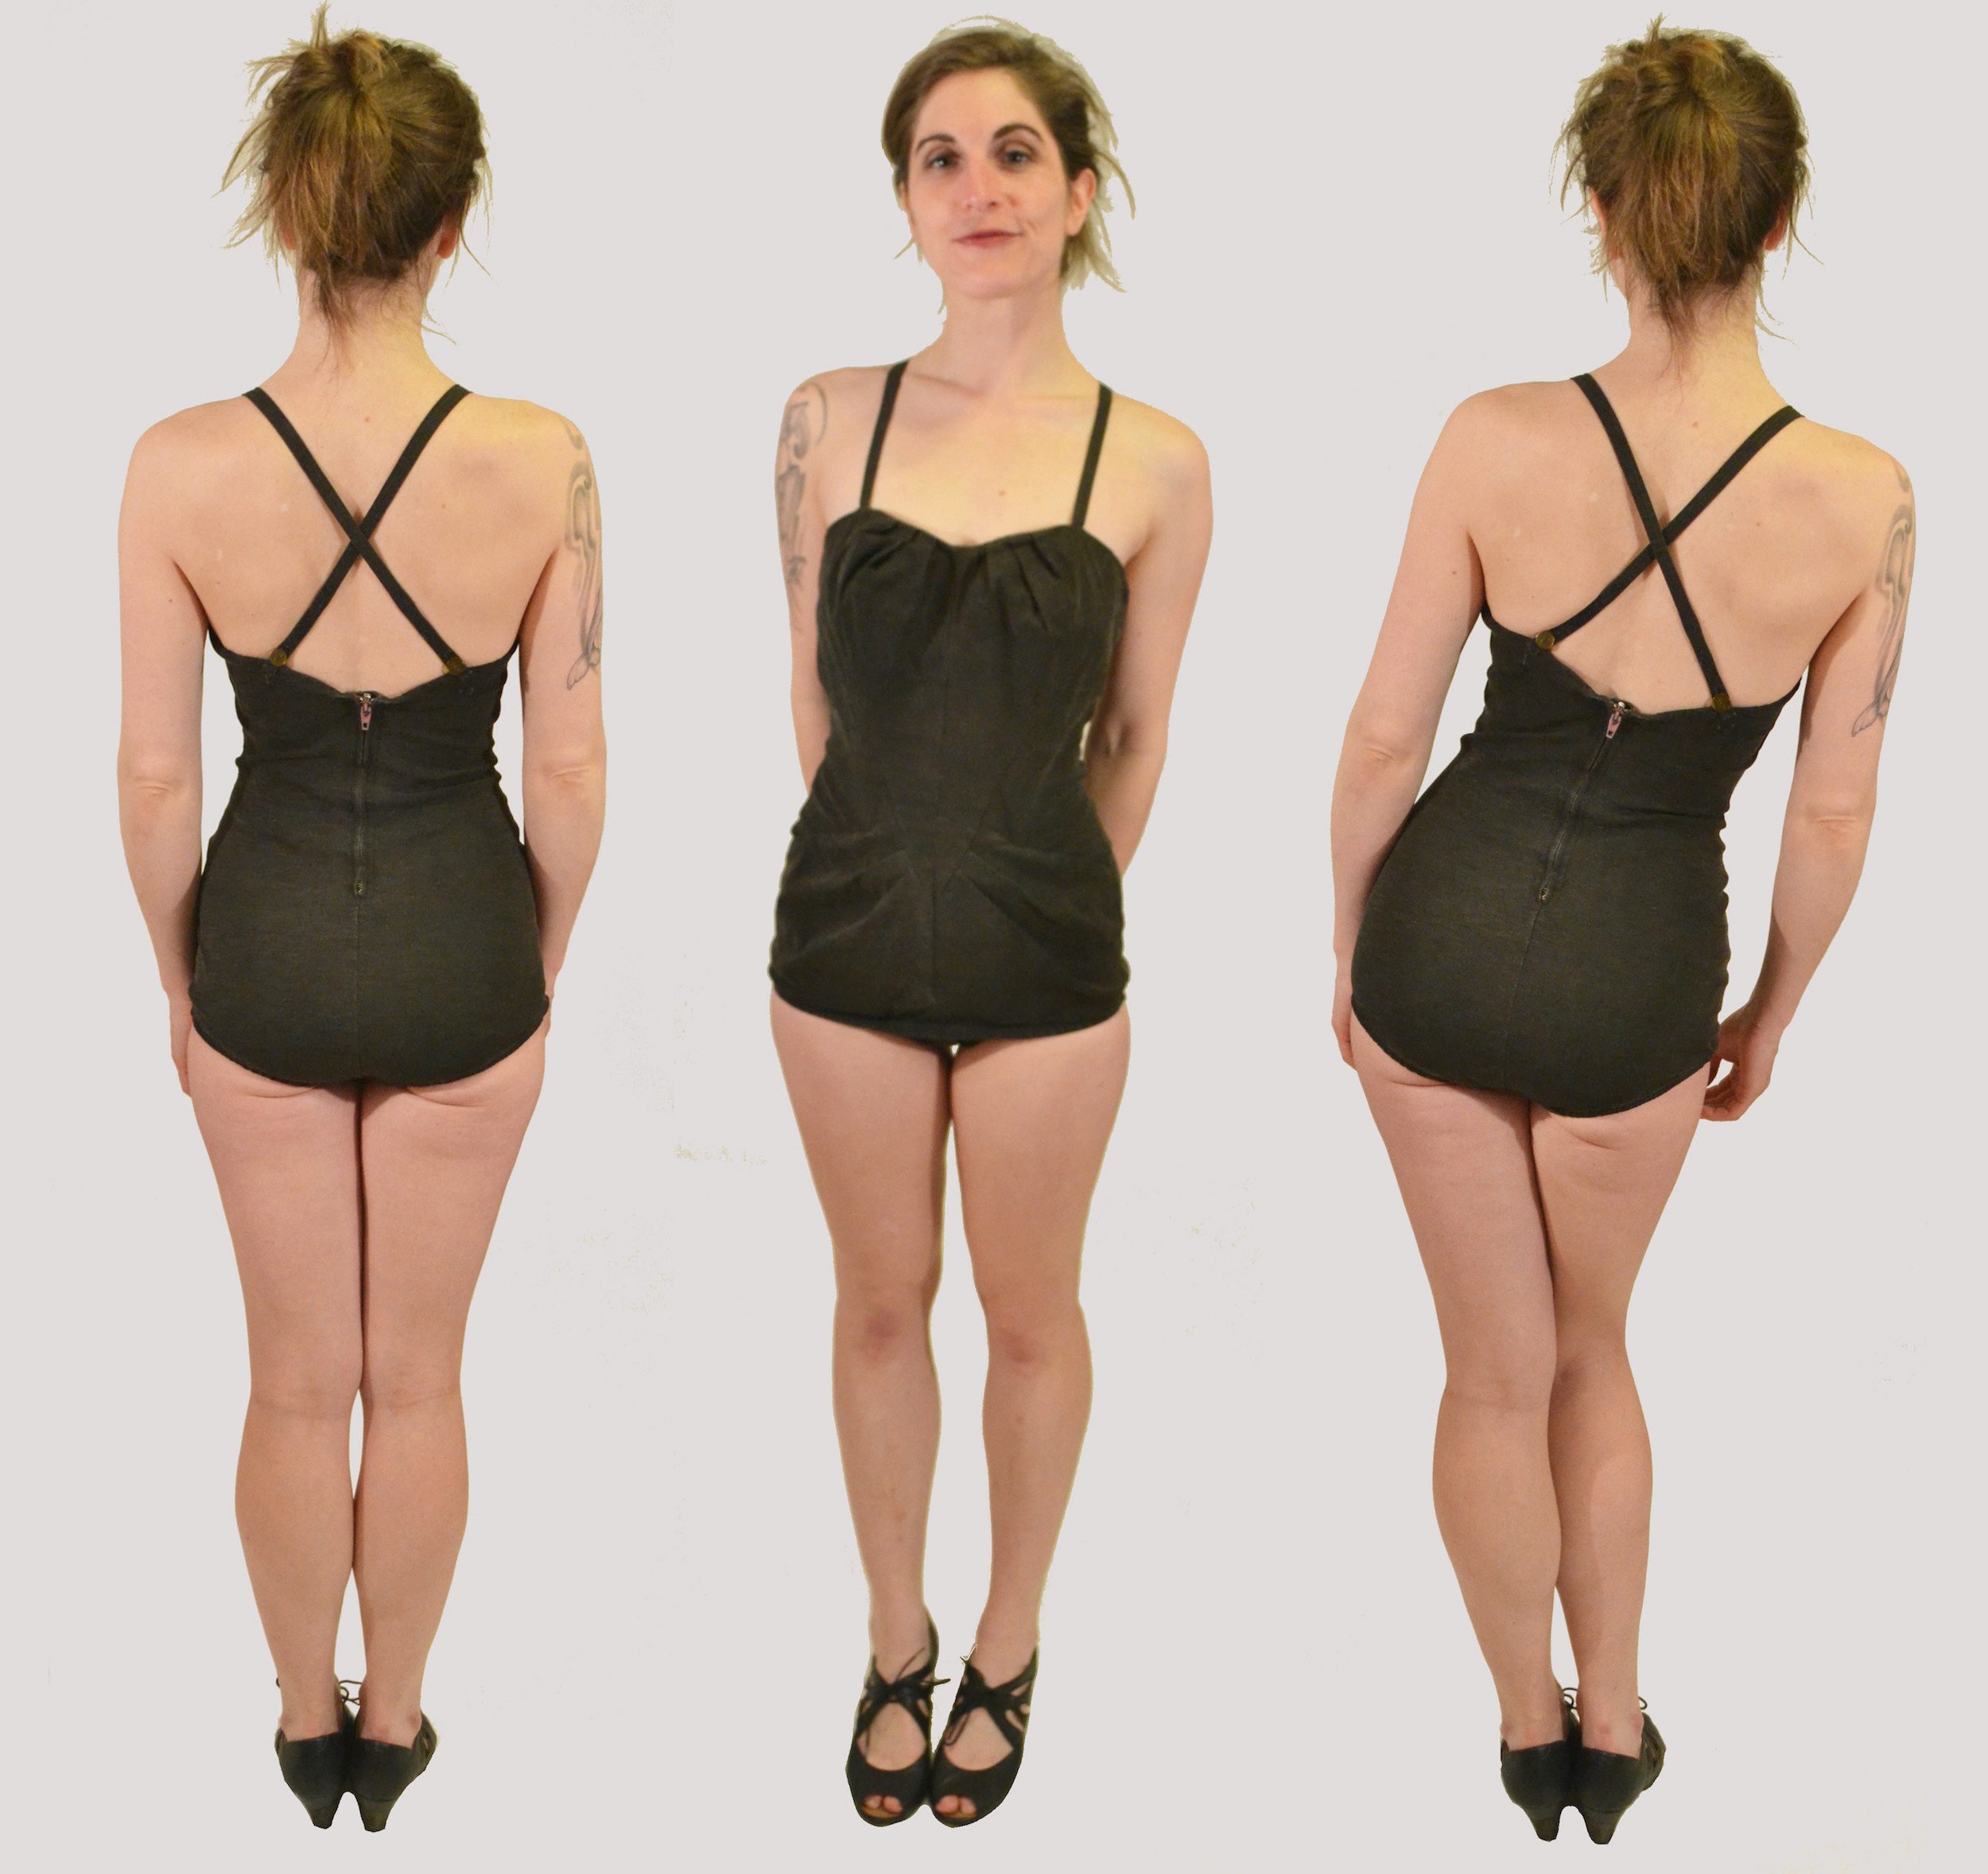 The Lombard 1940s Bathing Suit